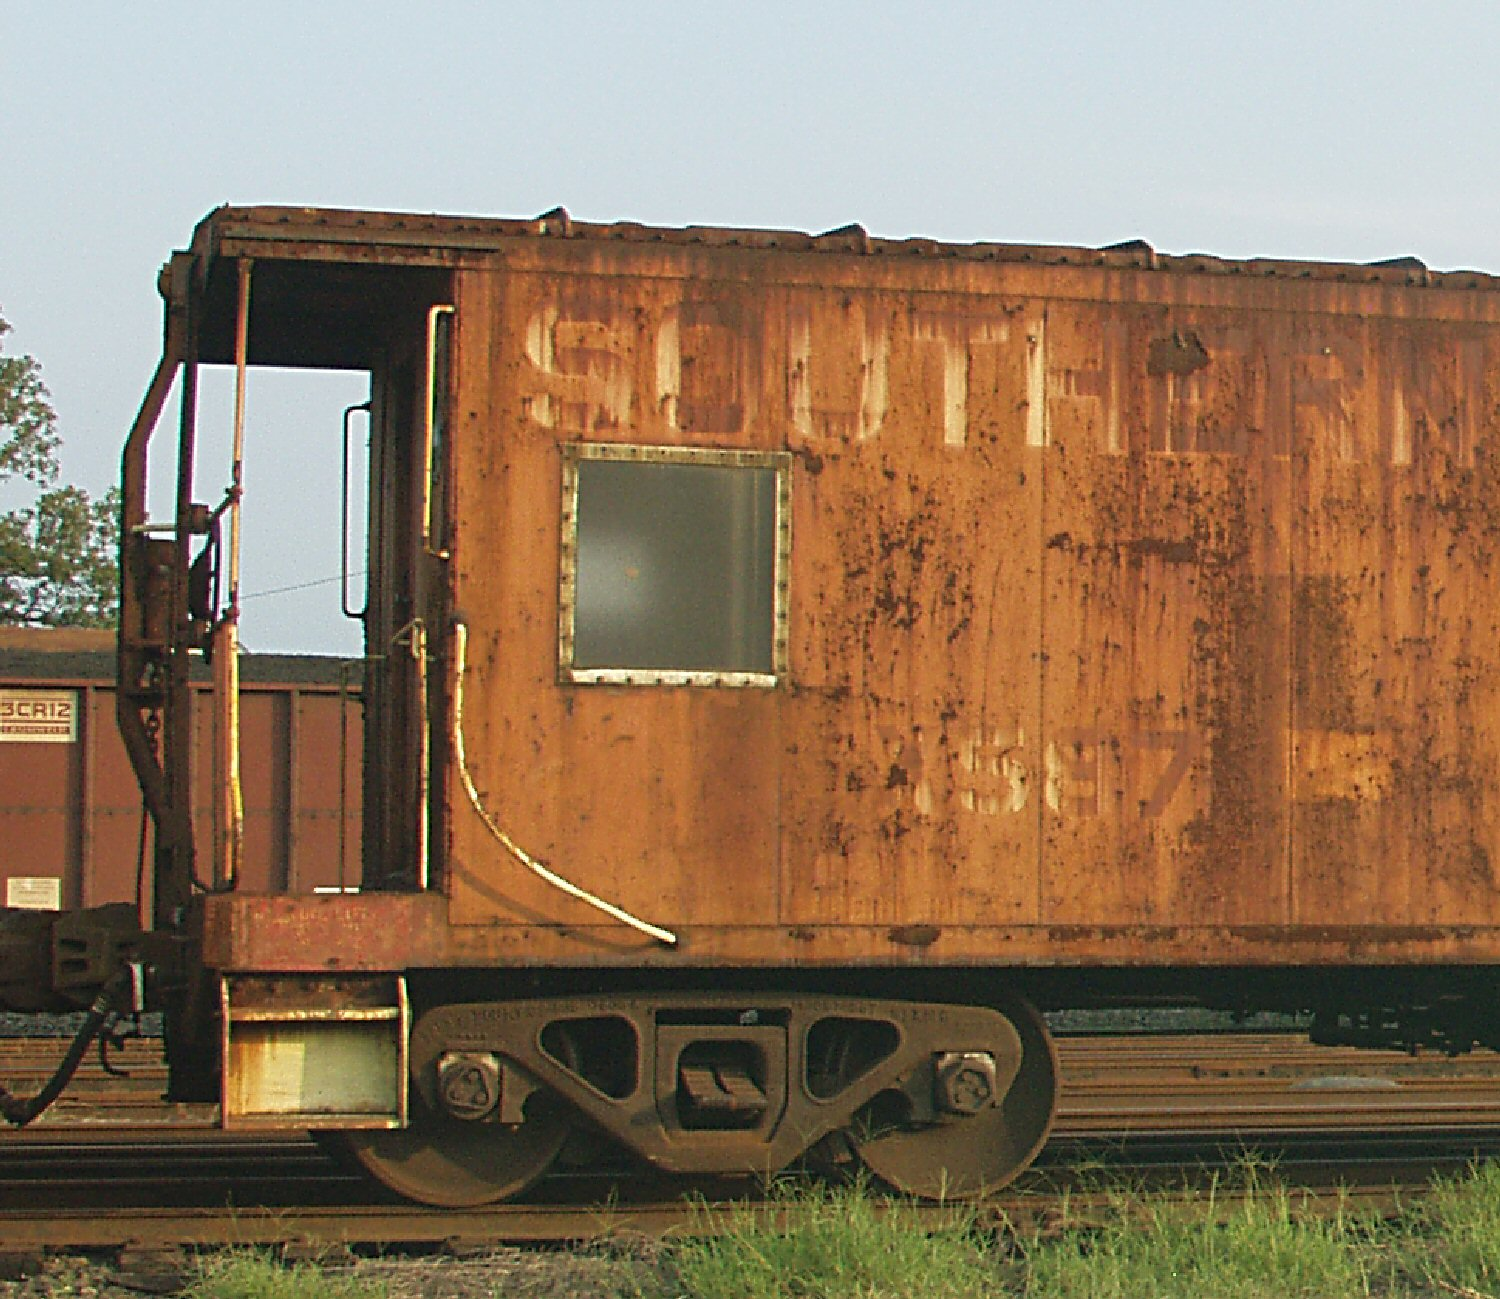 southern railway caboose with logo salisb kelly landrum